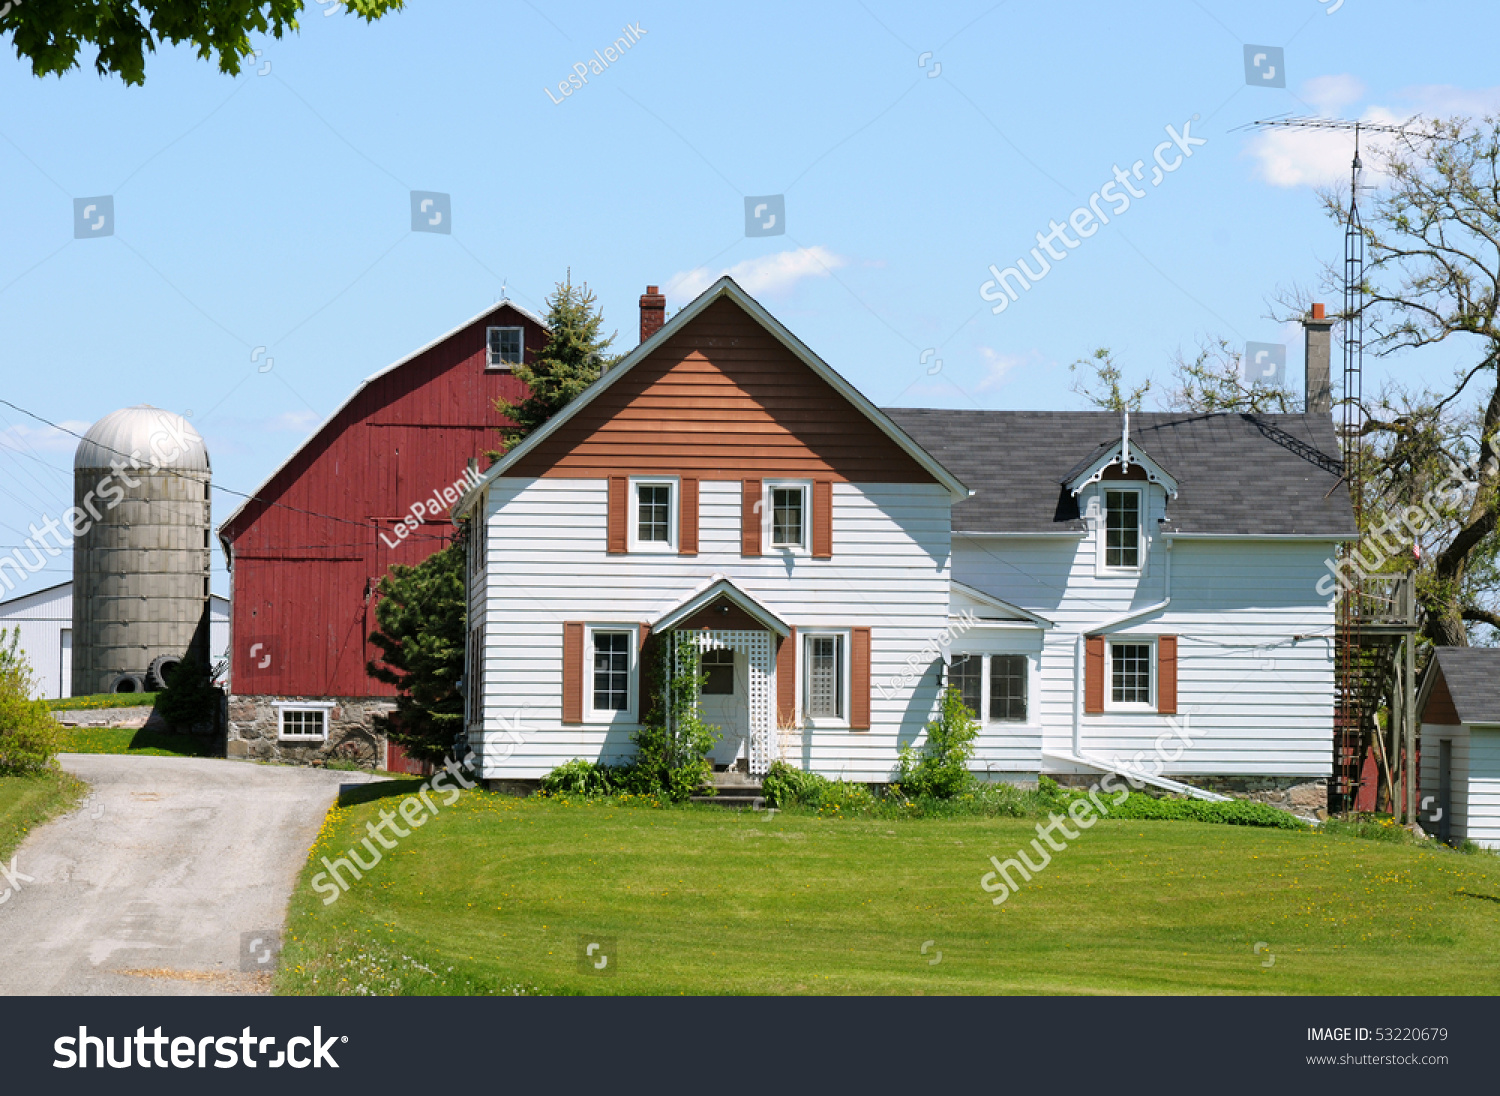 Farm house with a red barn silo and tv antenna stock for Red barn houses